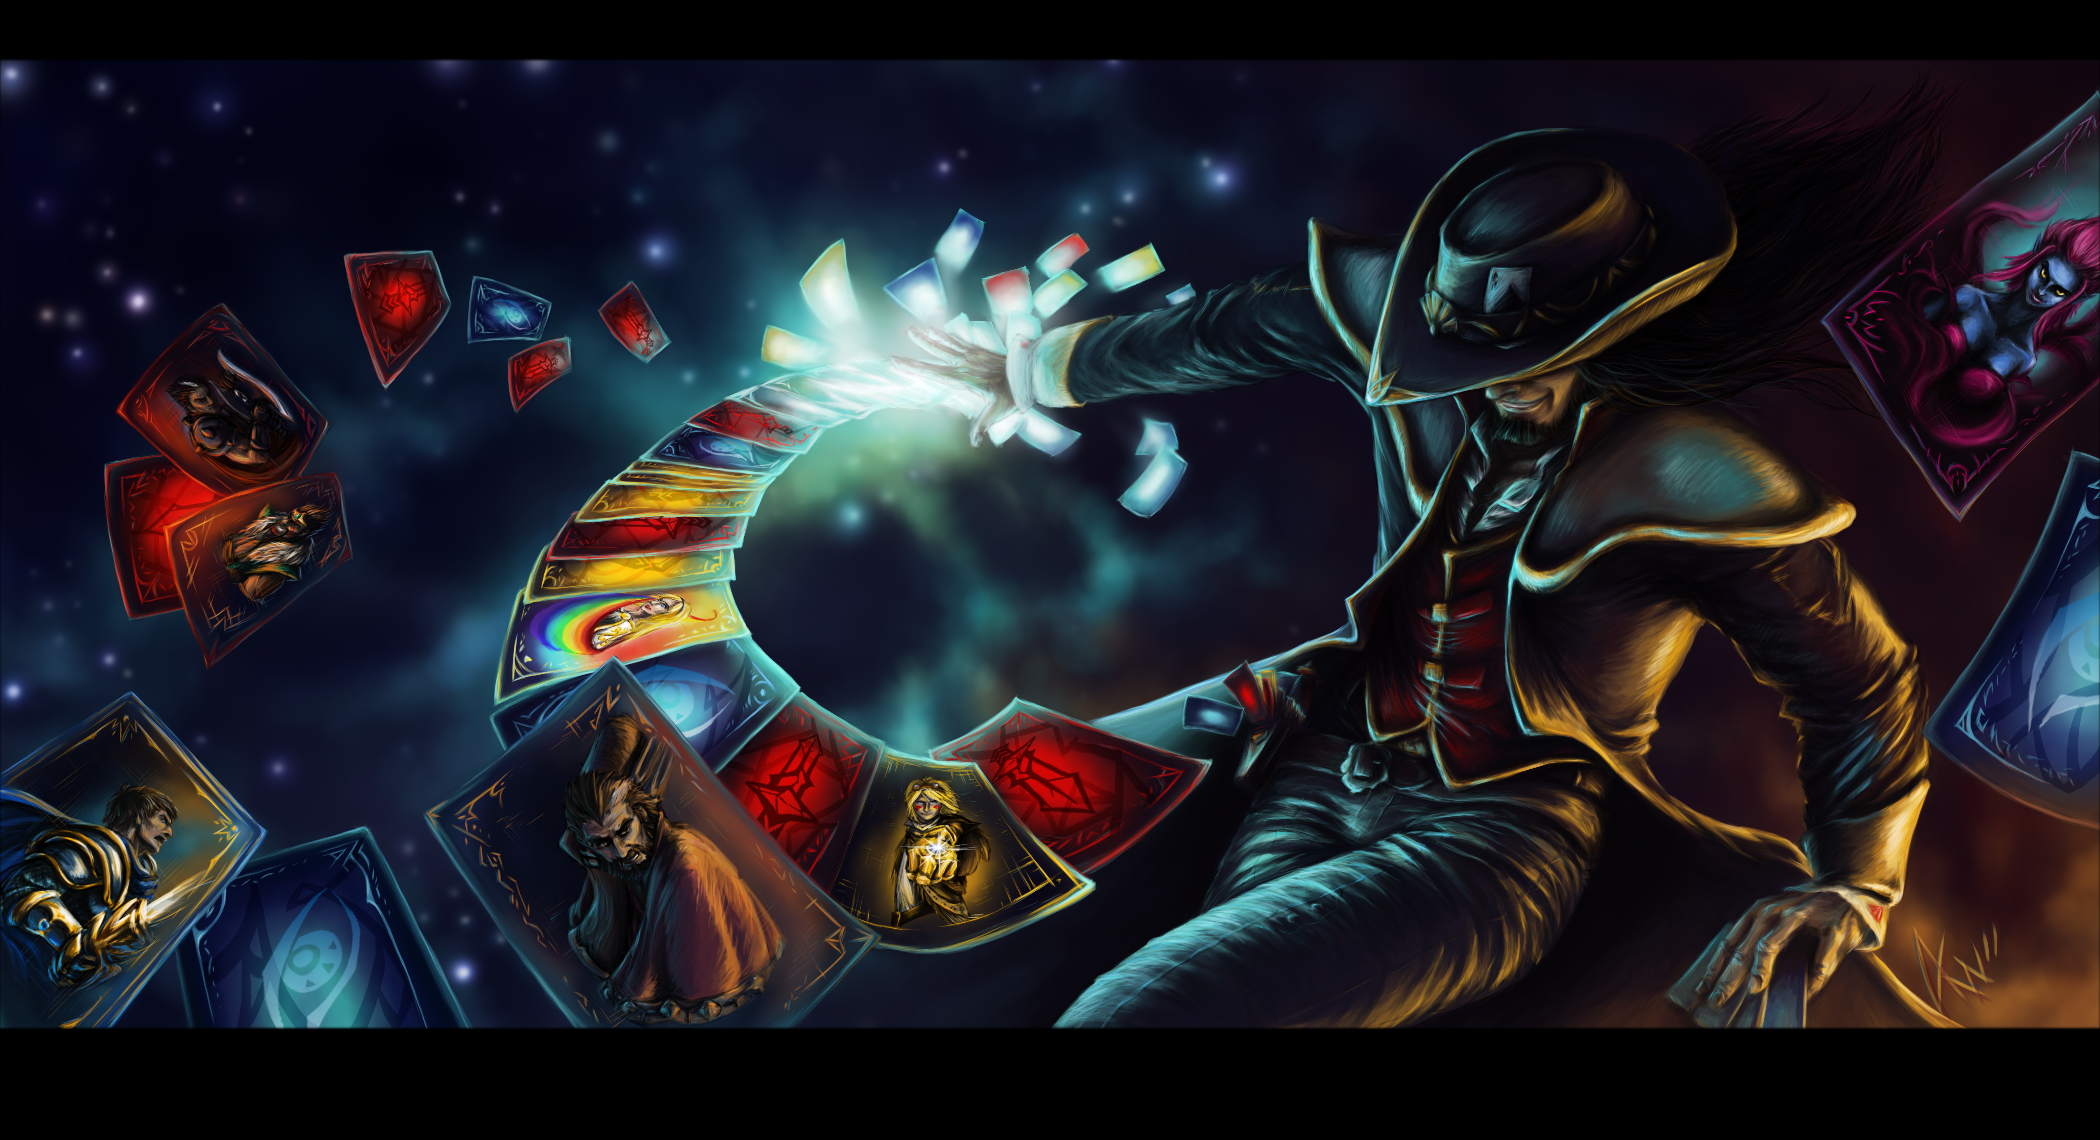 Twisted Fate Images TheCelebrityPix 2100x1140